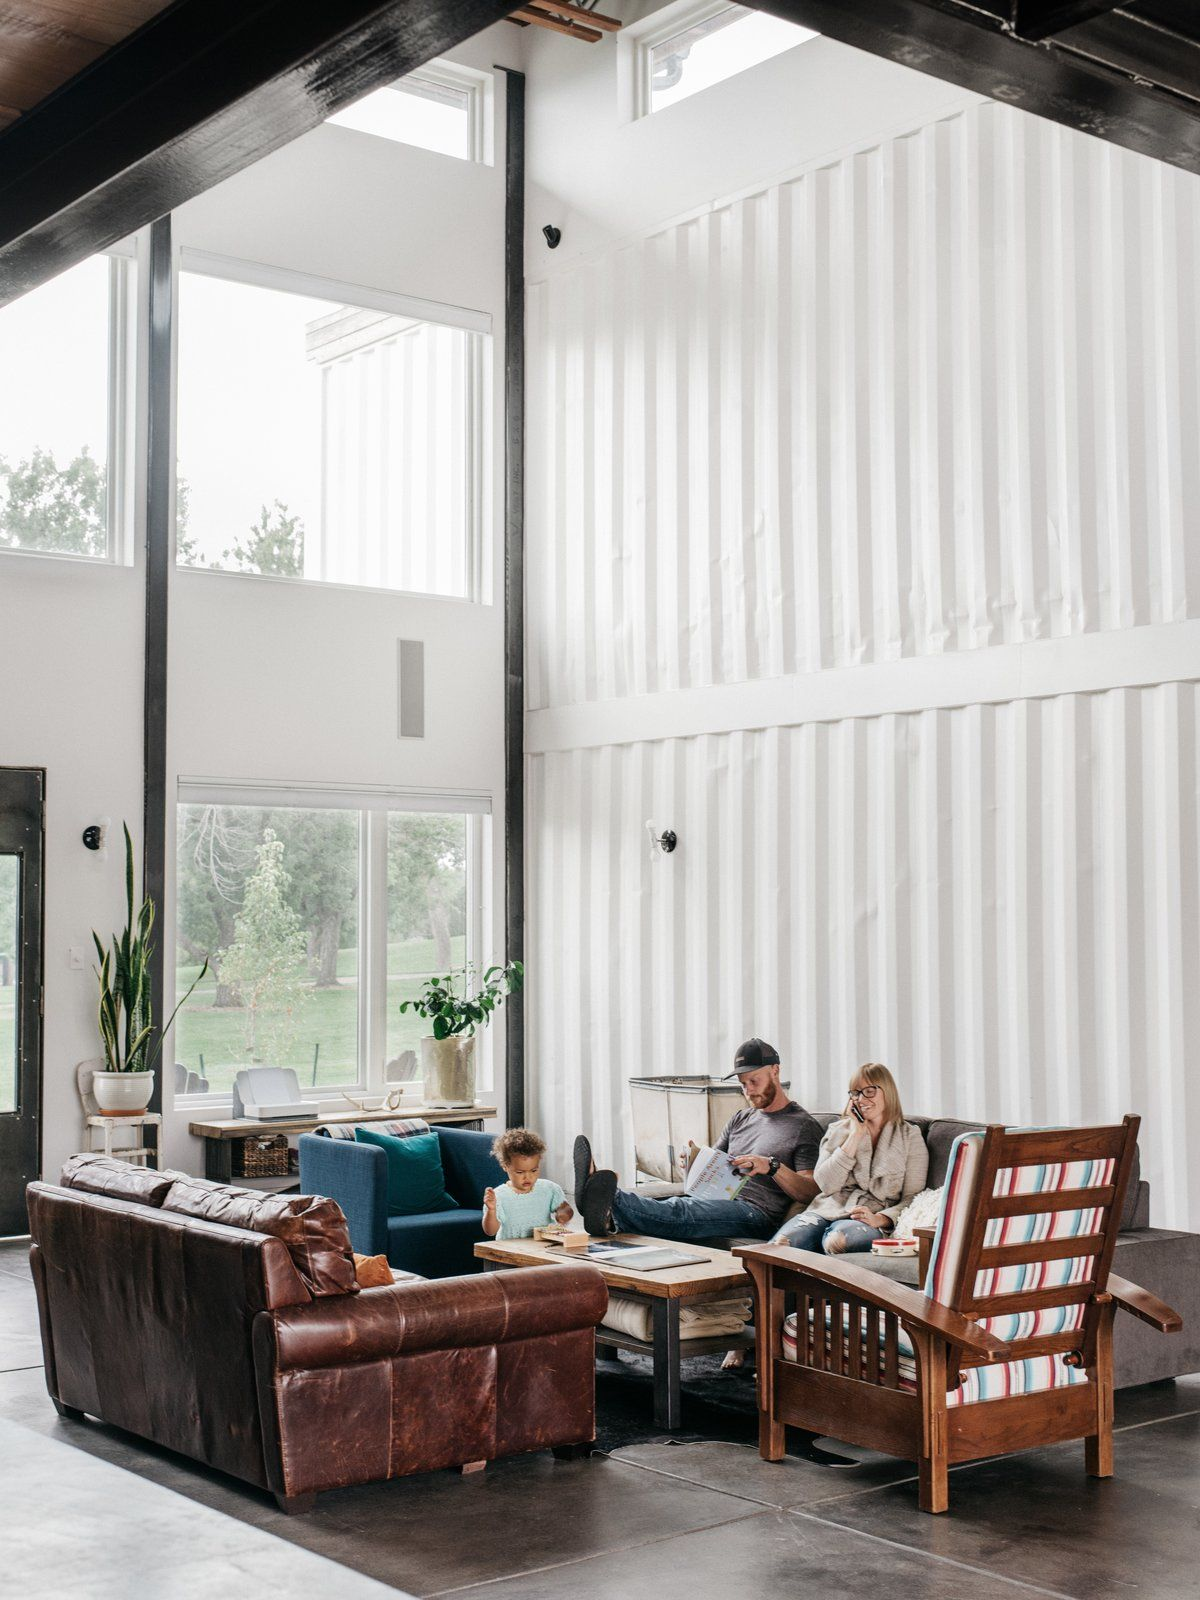 Firefighter Living Room Decor: A Colorado Firefighter Built His Own Shipping Container